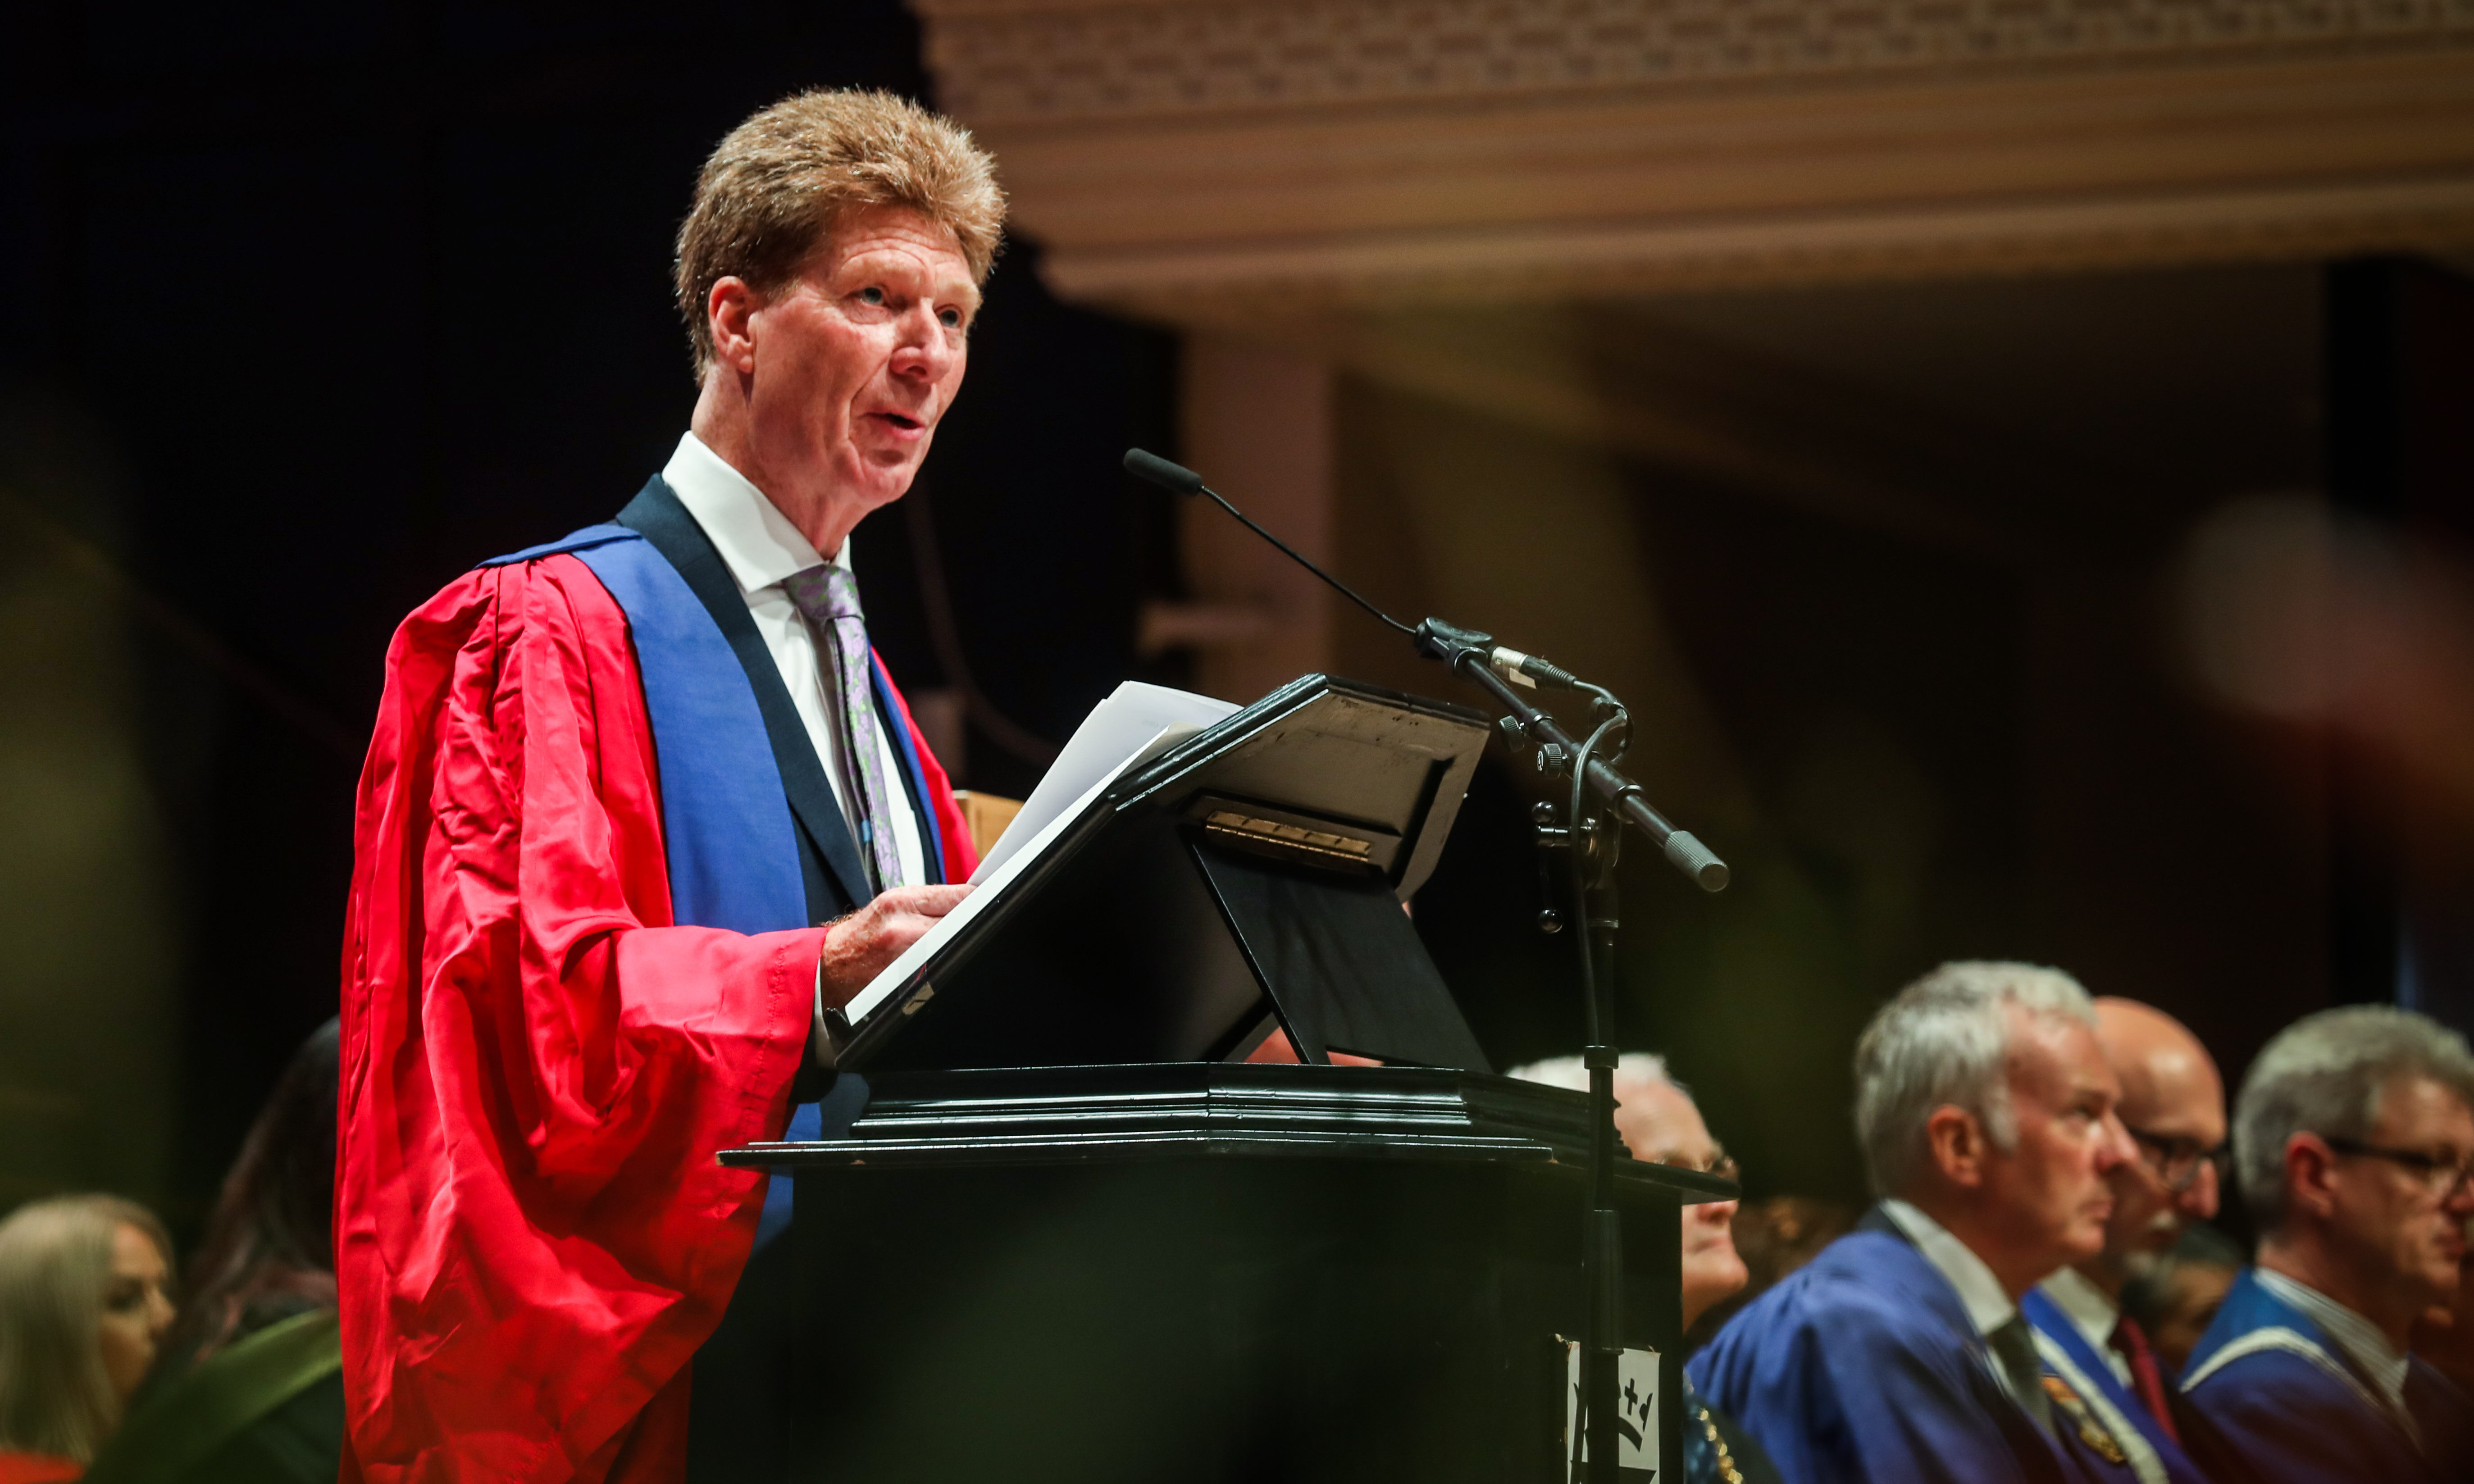 Jim Spence on stage making his address as he is officially named Dundee University rector.